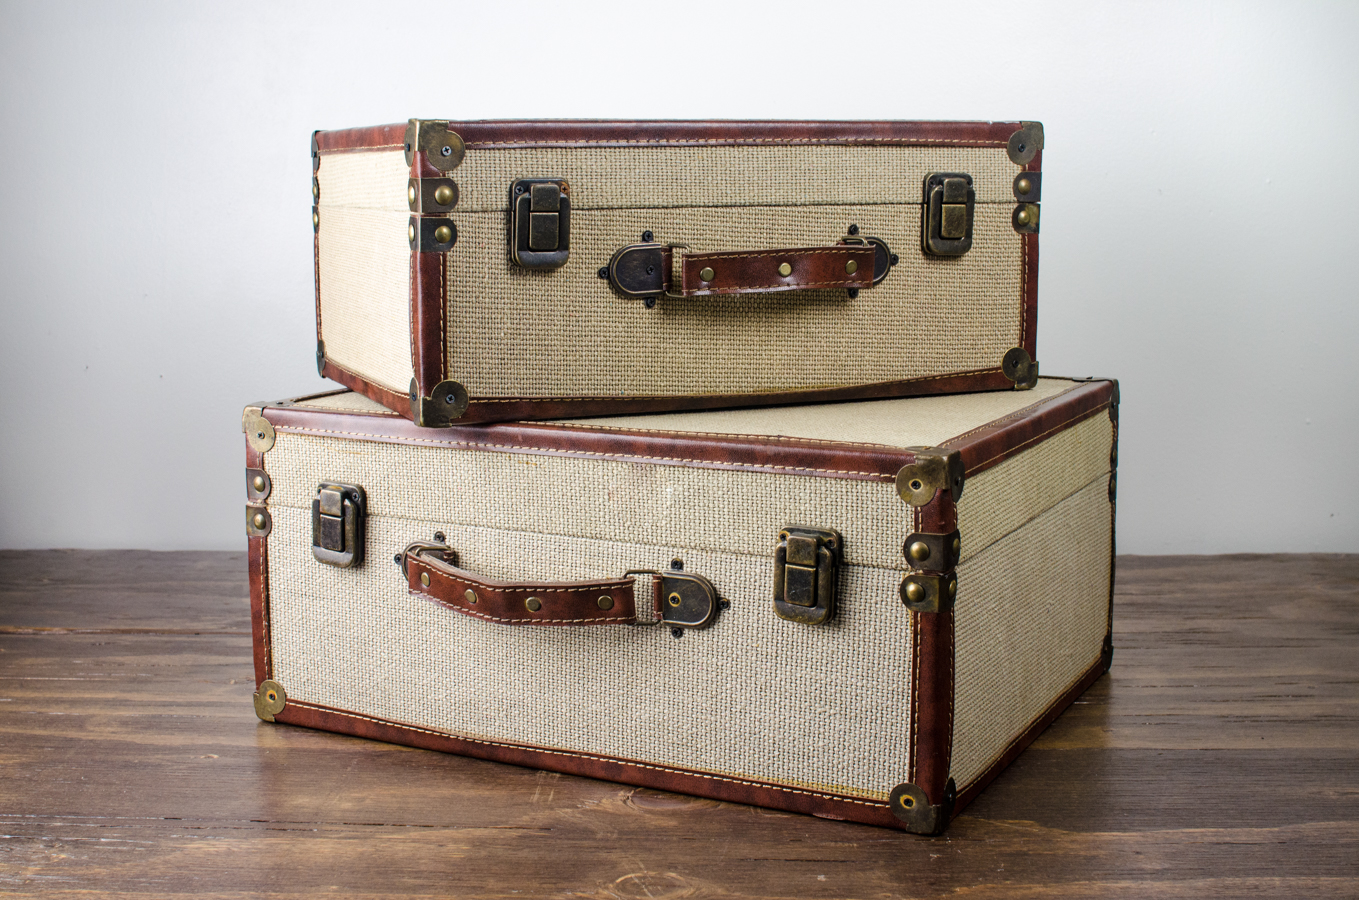 Vintage Look Burlap Vintage Look Luggage Case | Amigo Party Rentals, Inc.